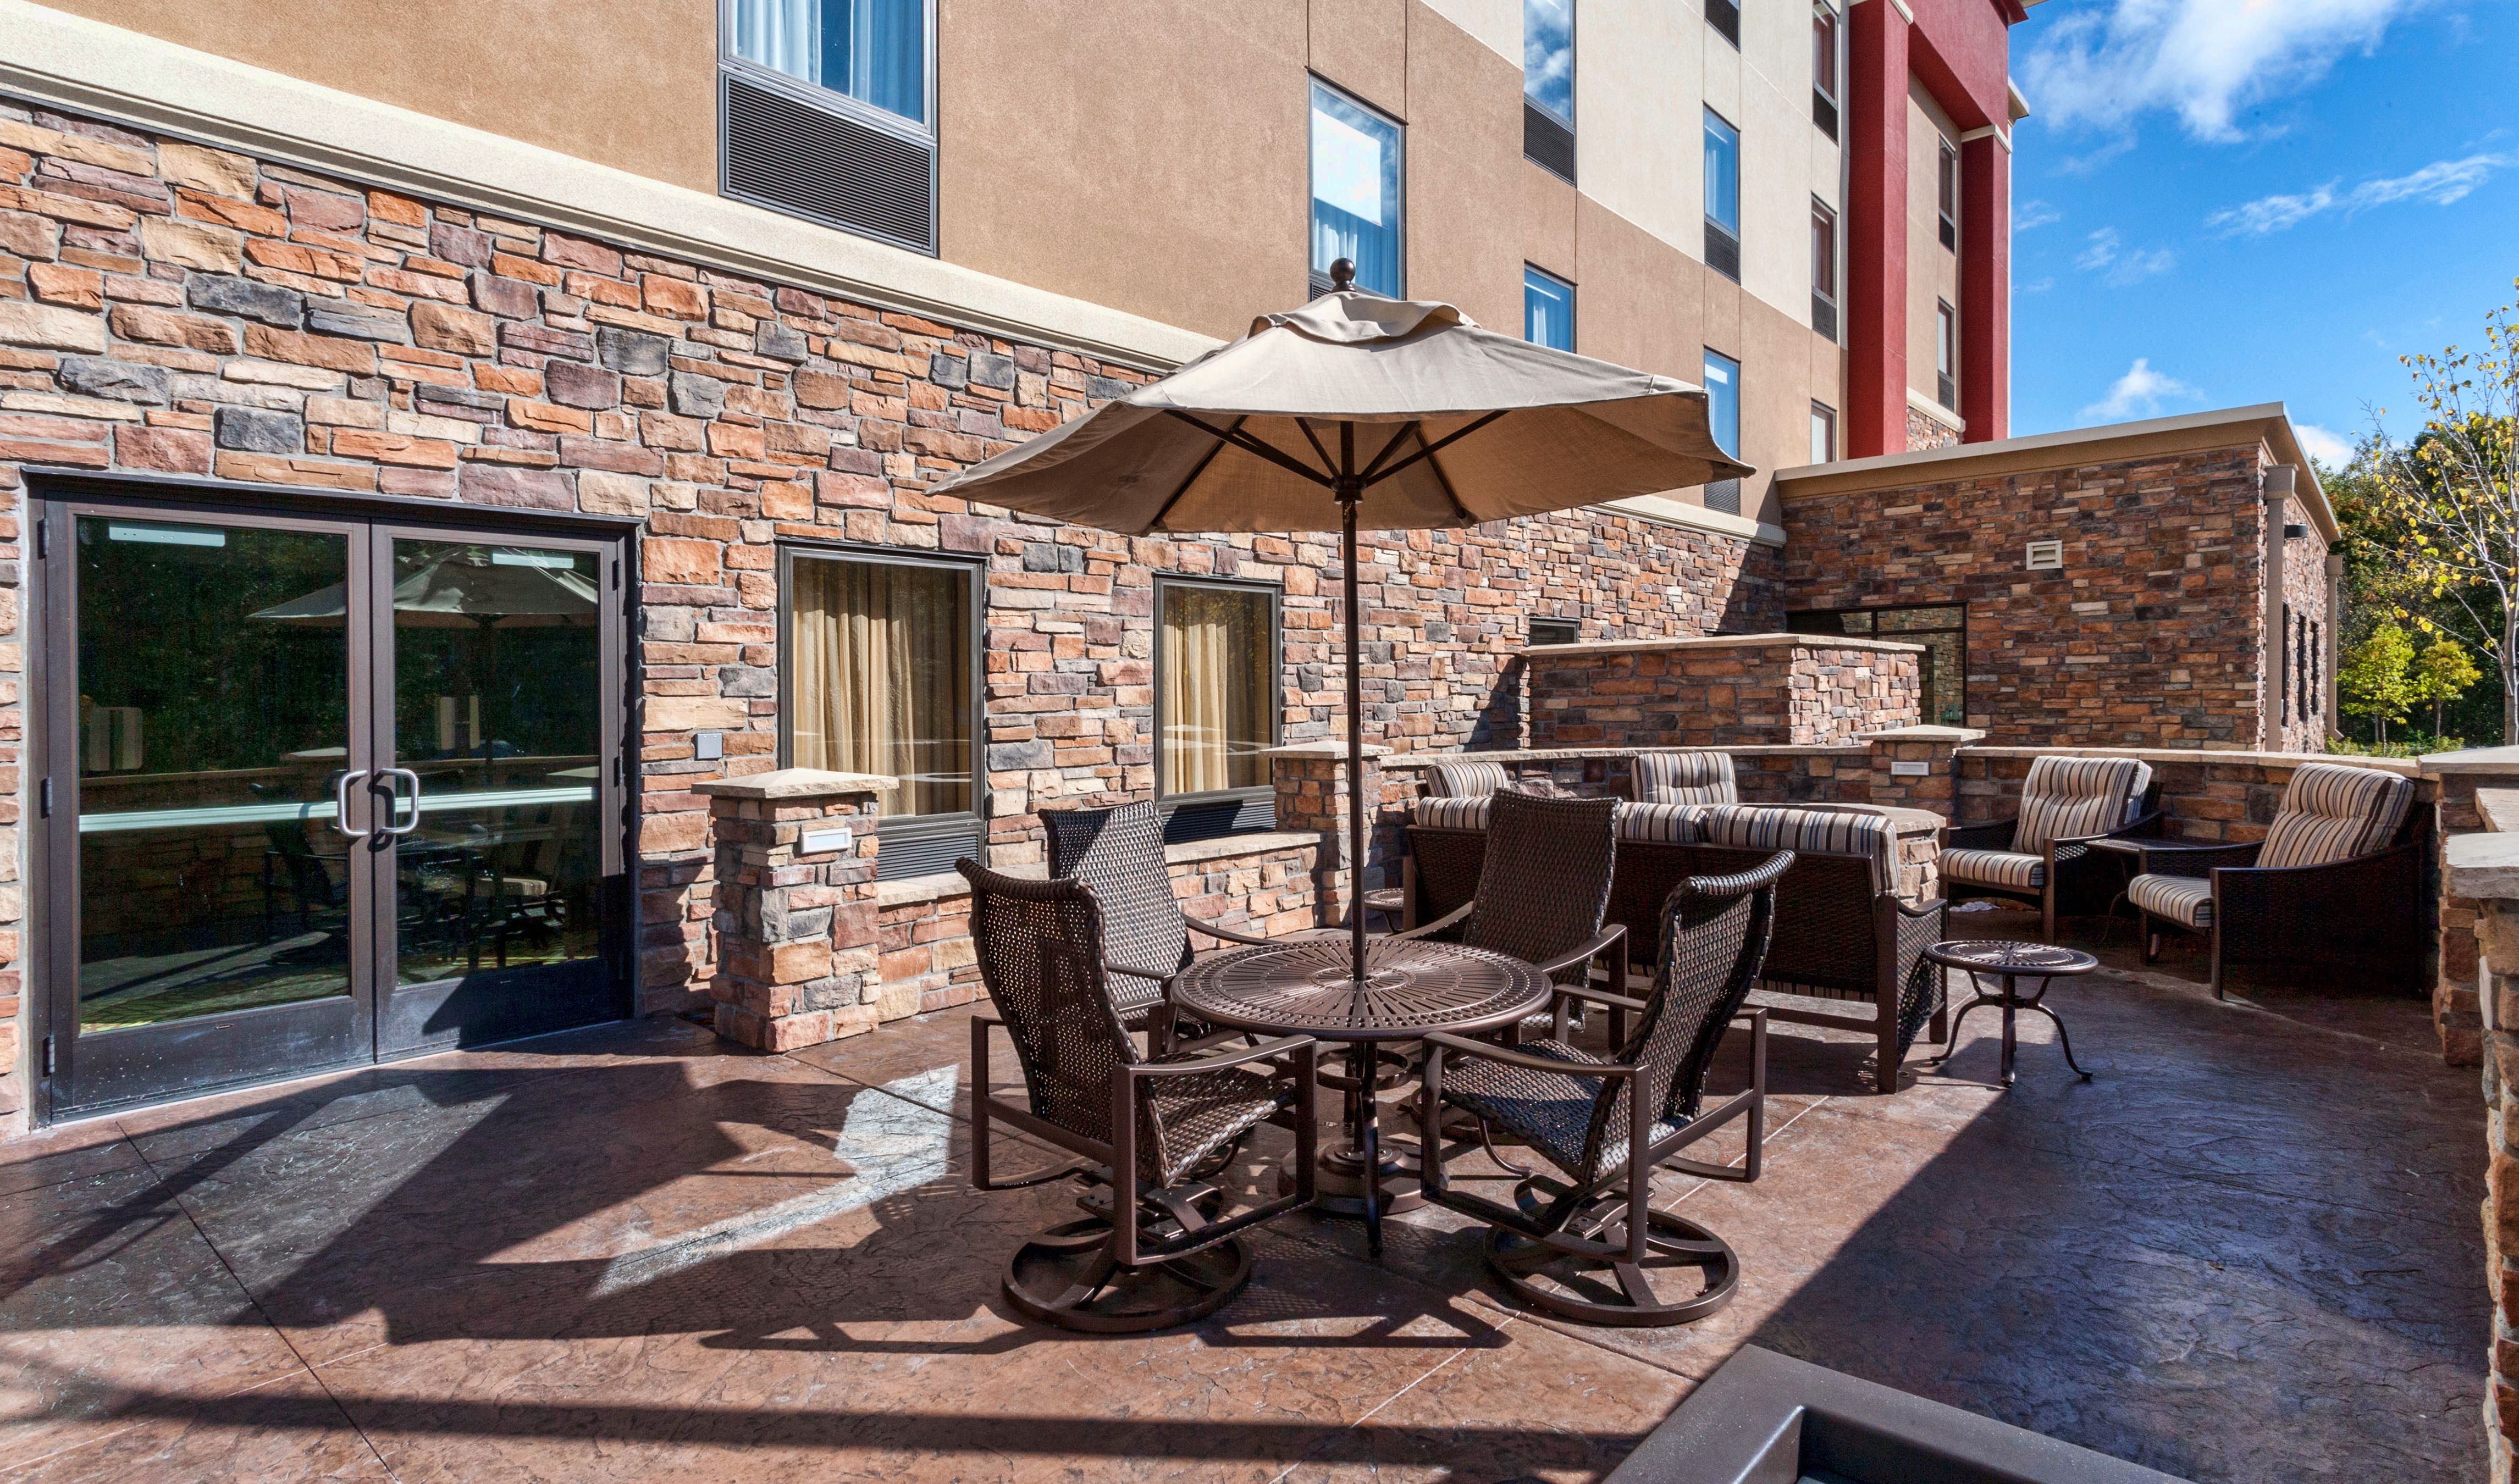 Hampton Inn & Suites Duluth North  Mall Area, Duluth. Outdoor Patio Kansas City. Decorate Small Patio. Punch Landscape Deck & Patio Nexgen. Stone Patio Pavers Lowes. Enclosed Patio Renovation. Patio Construction On Slope. Simple Covered Patio Ideas. Patio Summer Decor